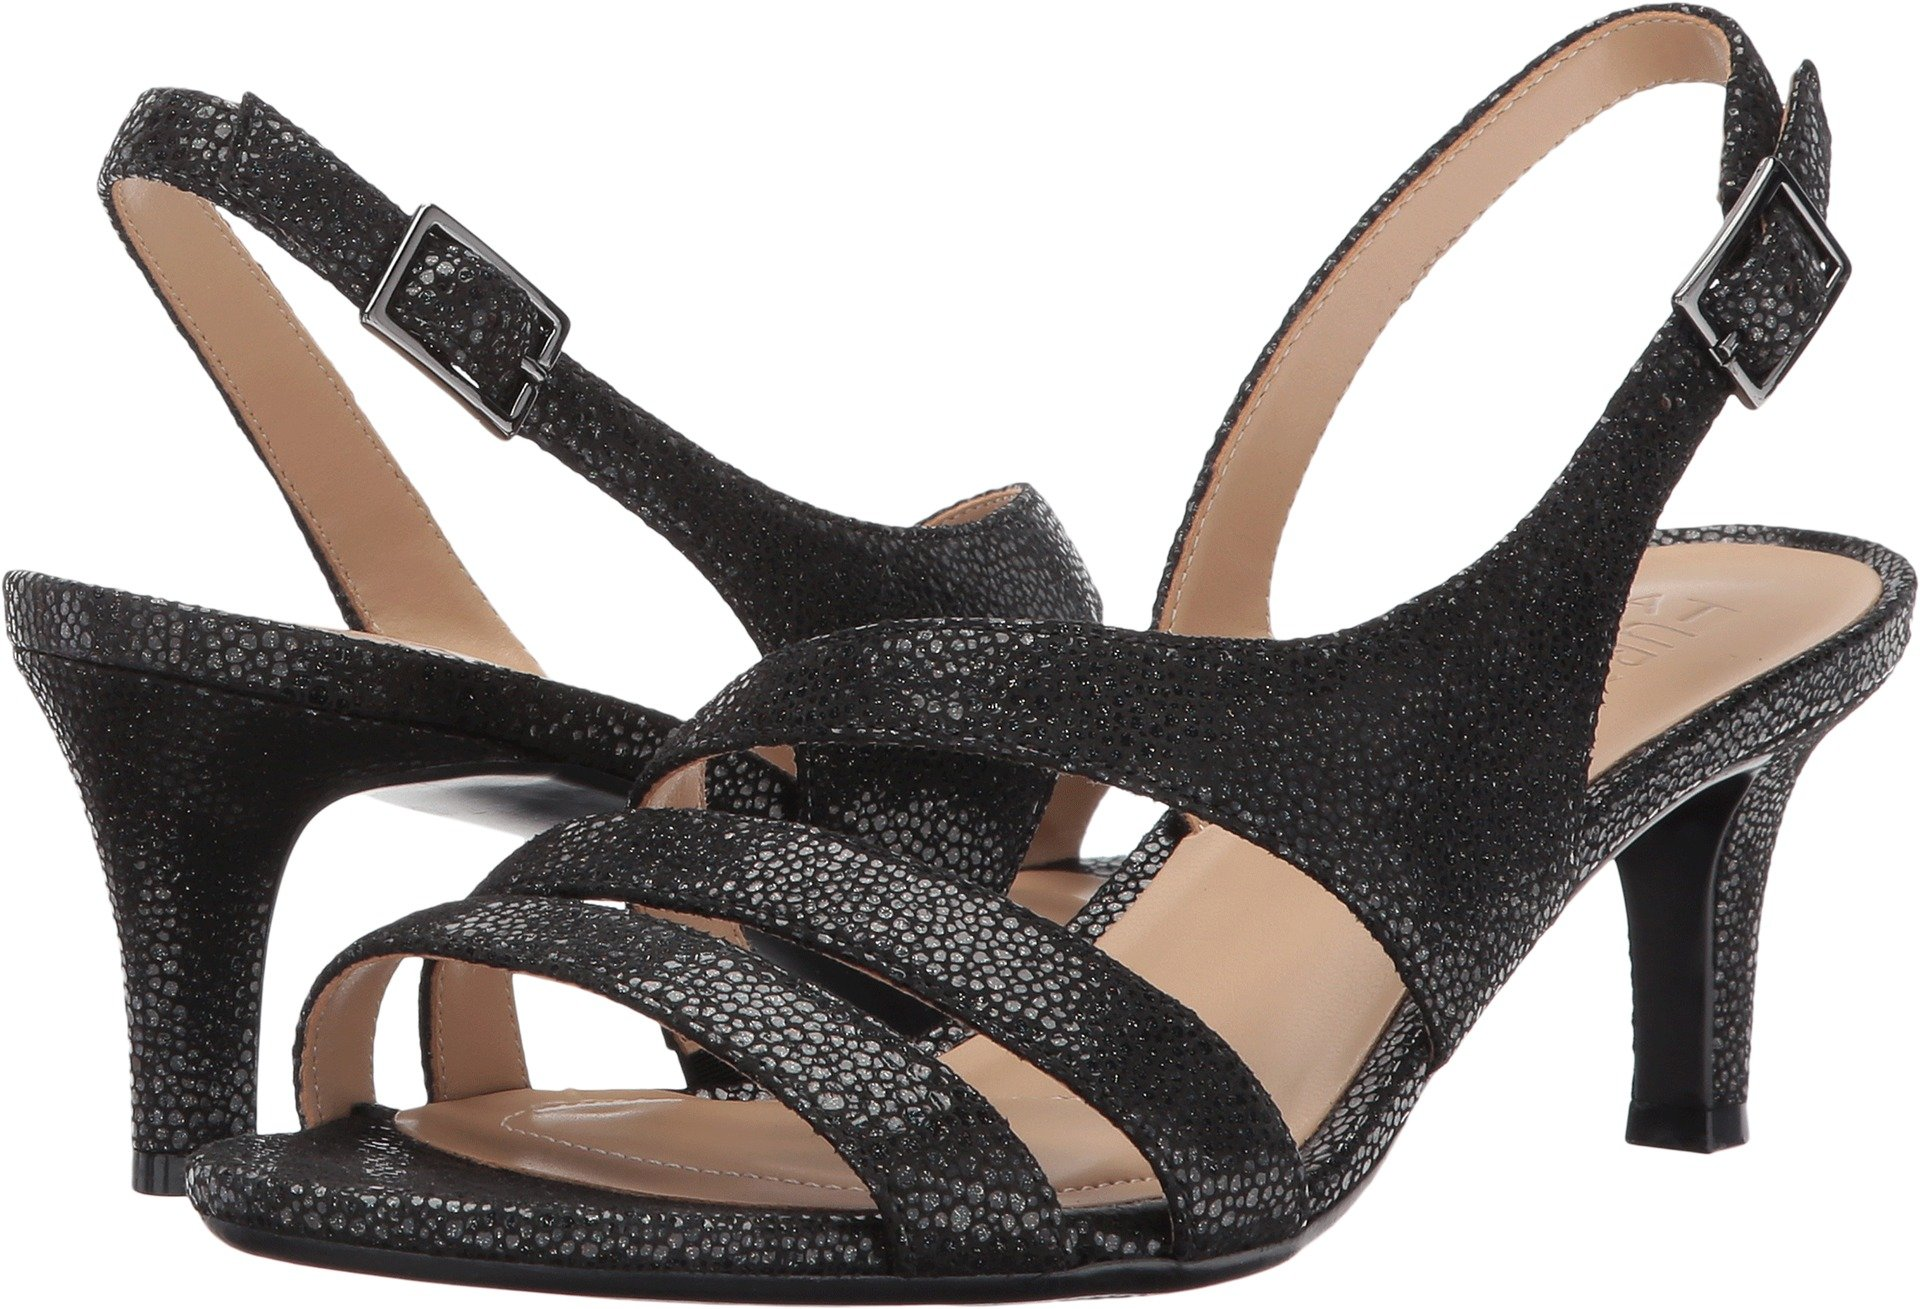 Naturalizer Women's Taimi Black Iridescent Pebbled Leather Sandal